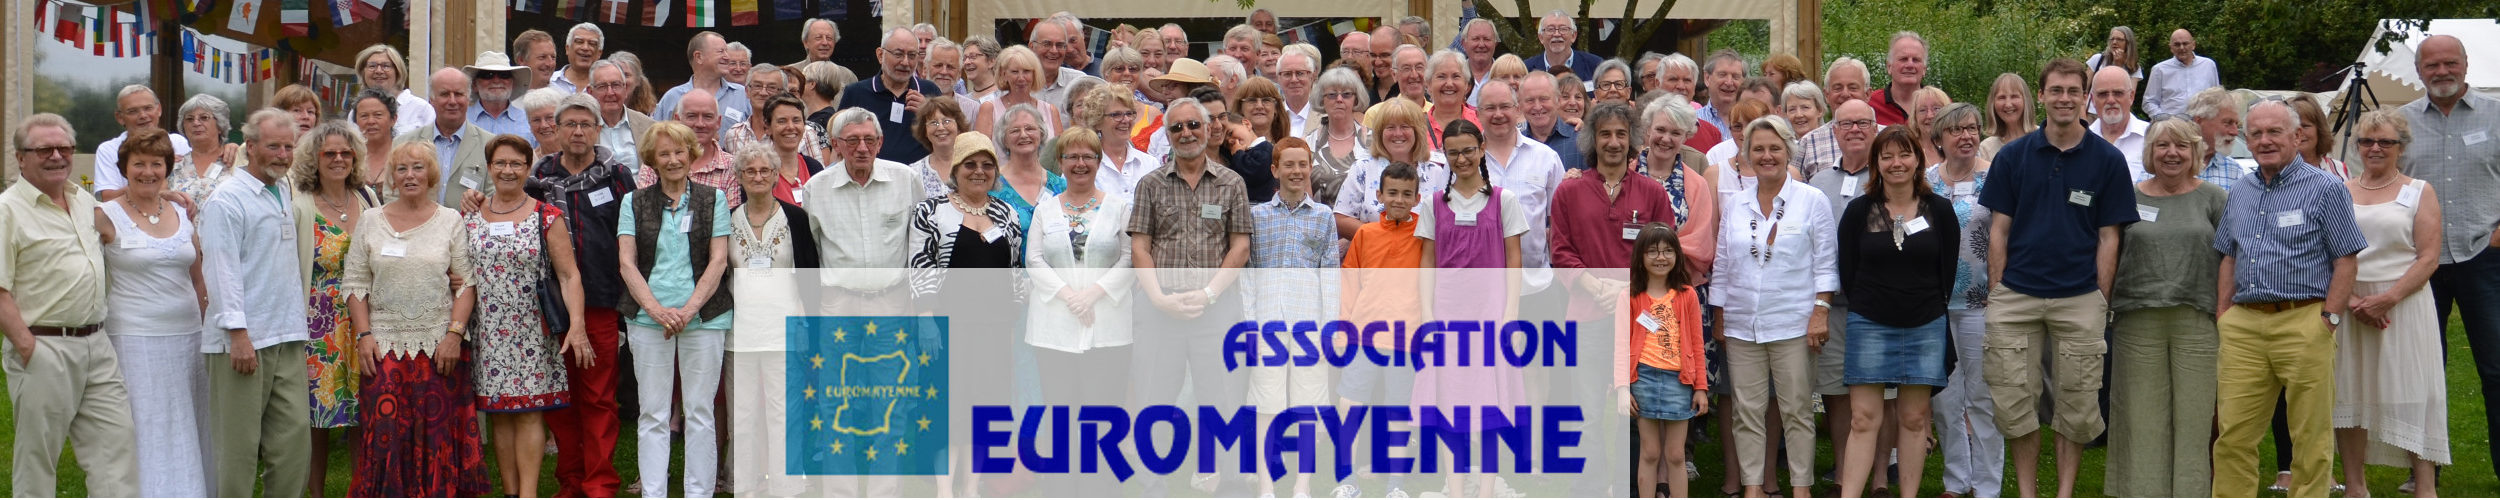 Association EuroMayenne